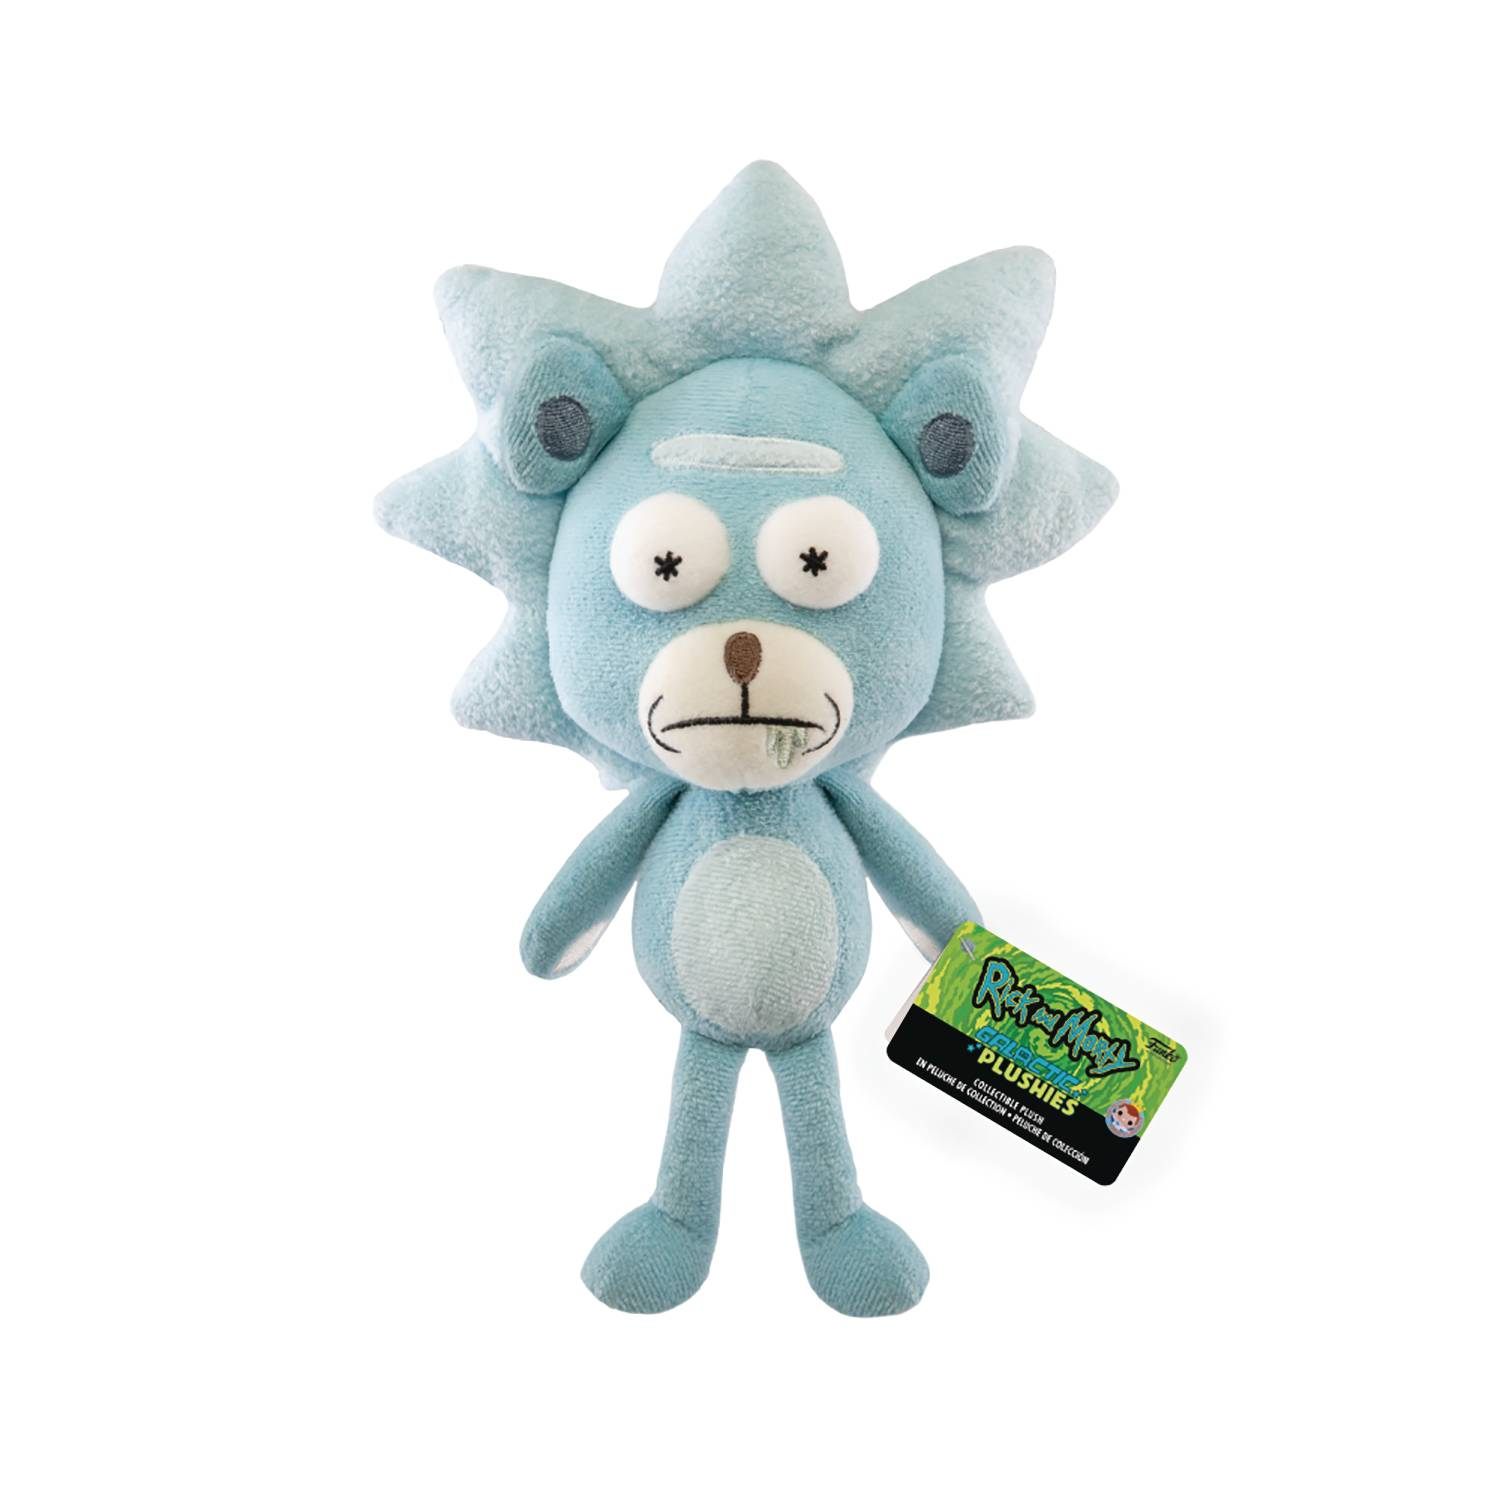 RICK & MORTY TEDDY RICK GALACTIC PLUSHIE